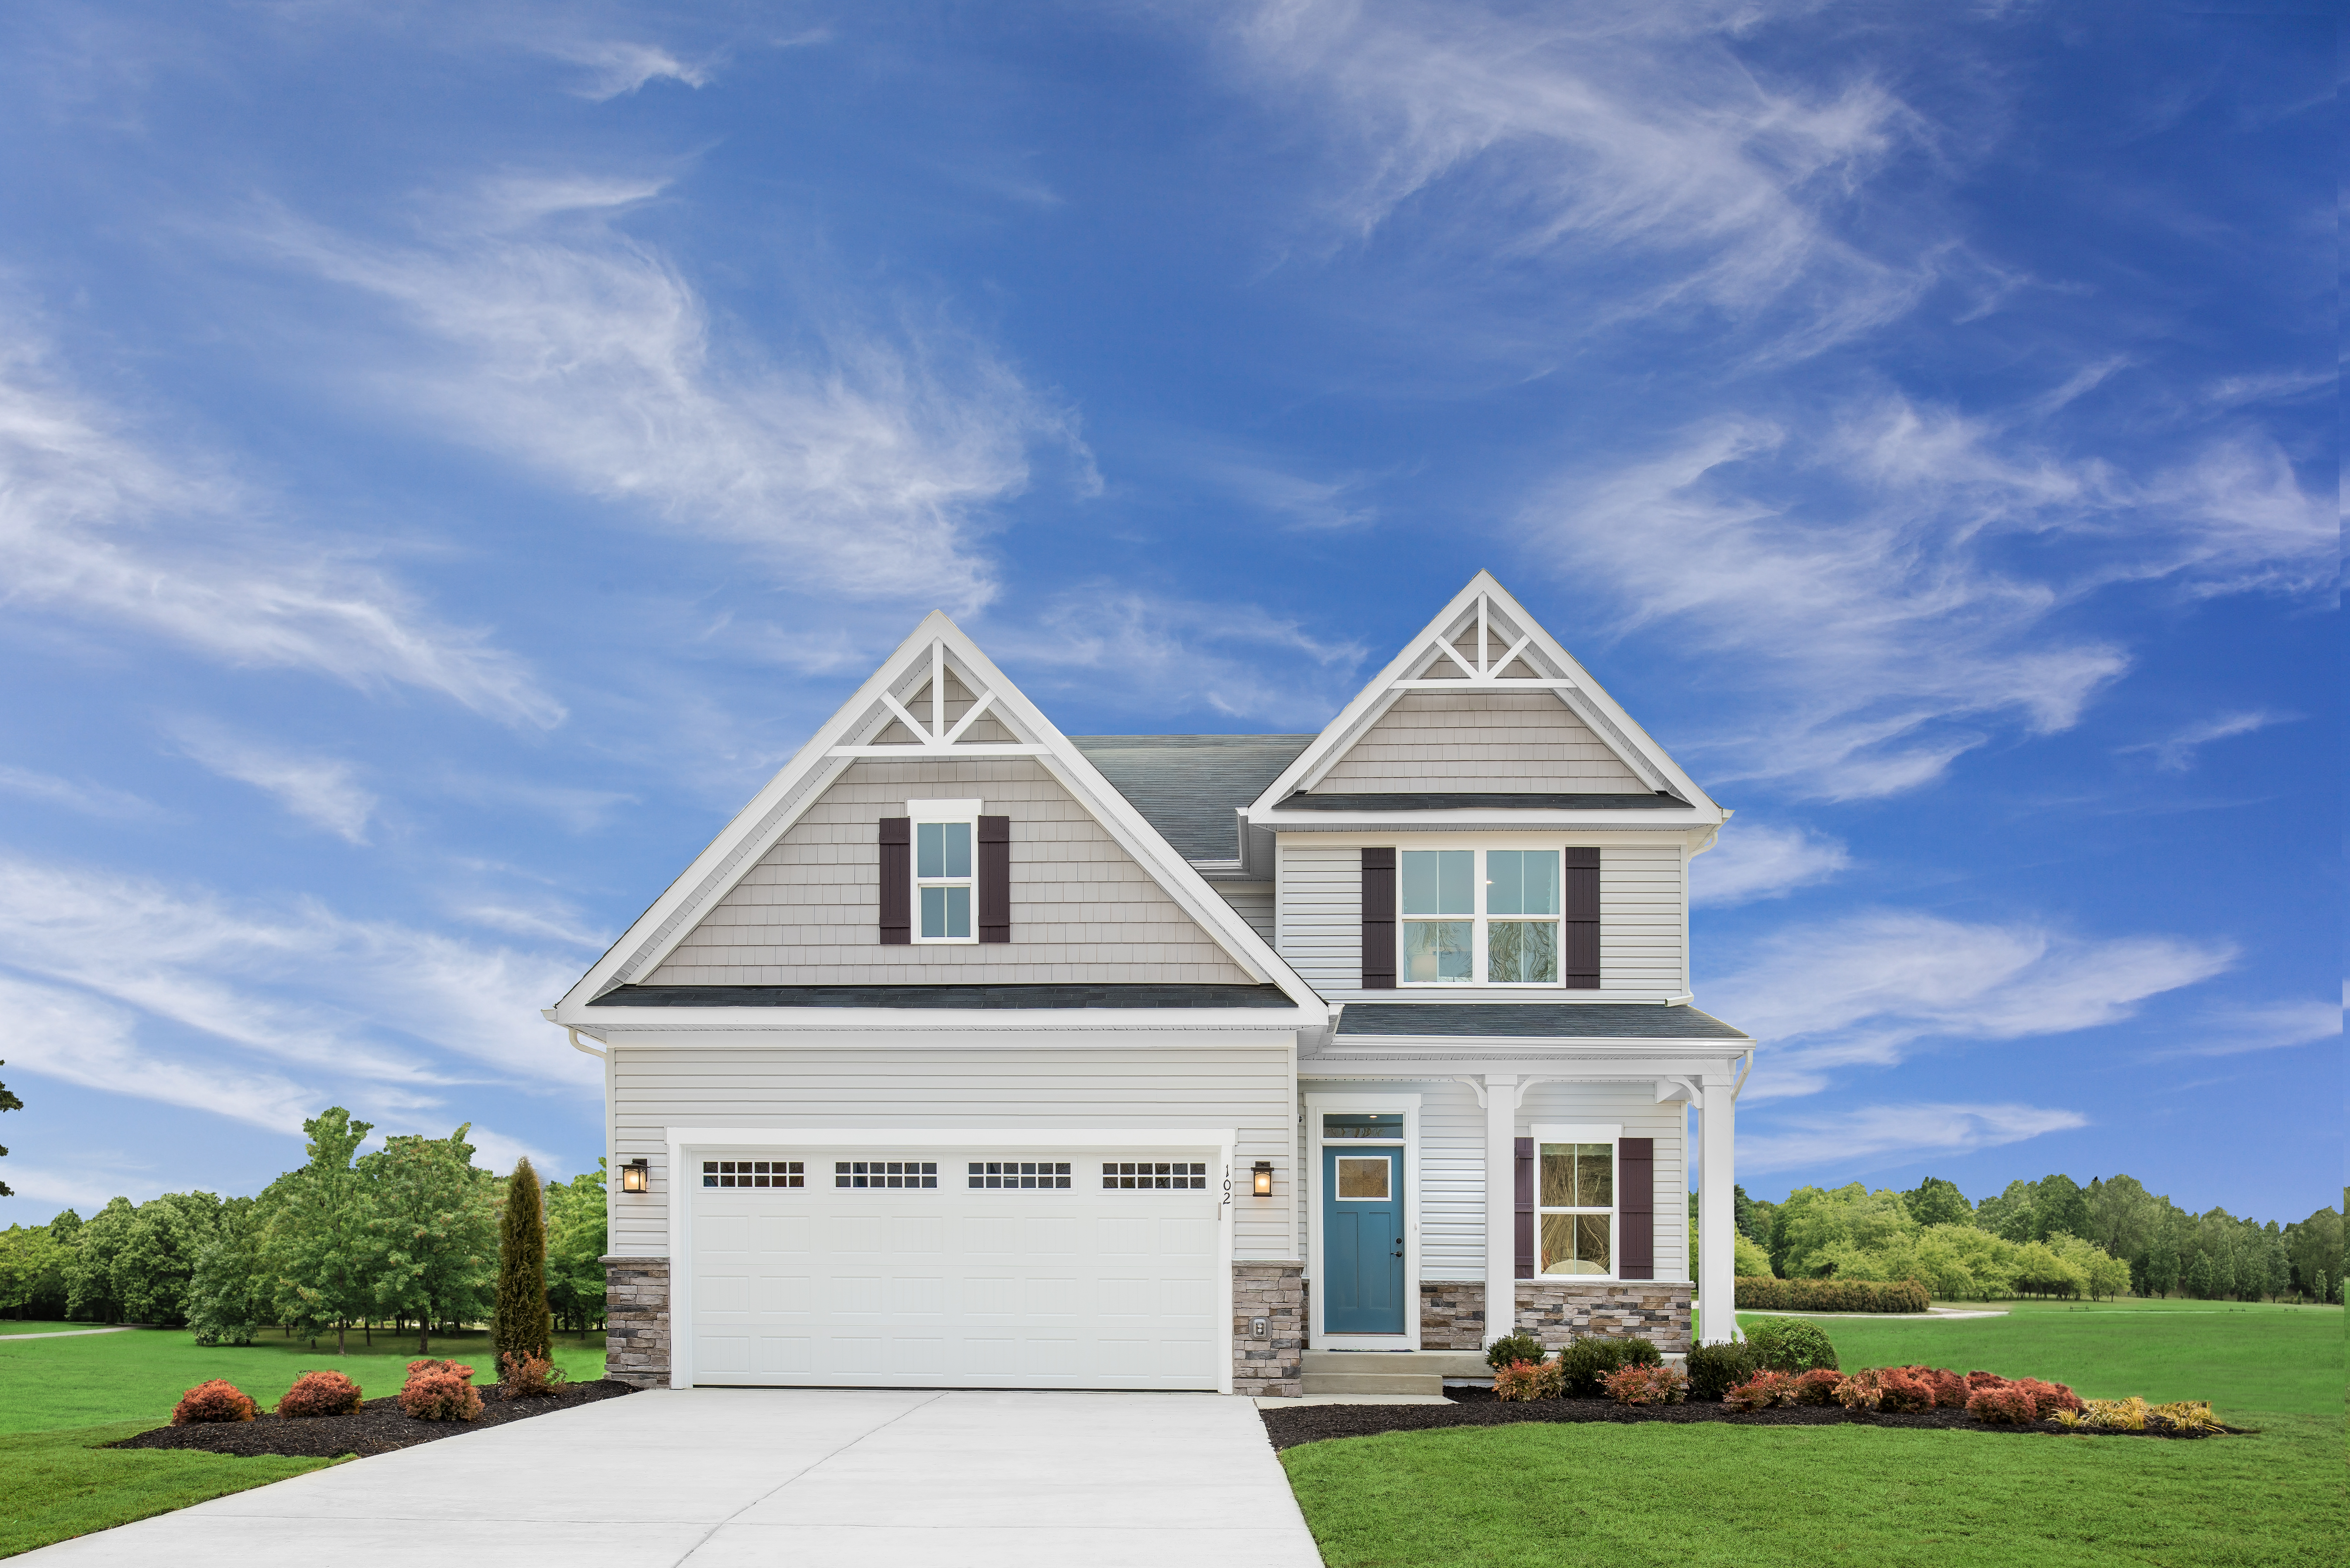 New Homes For Sale At Gates Village In Olmsted Township Oh Within